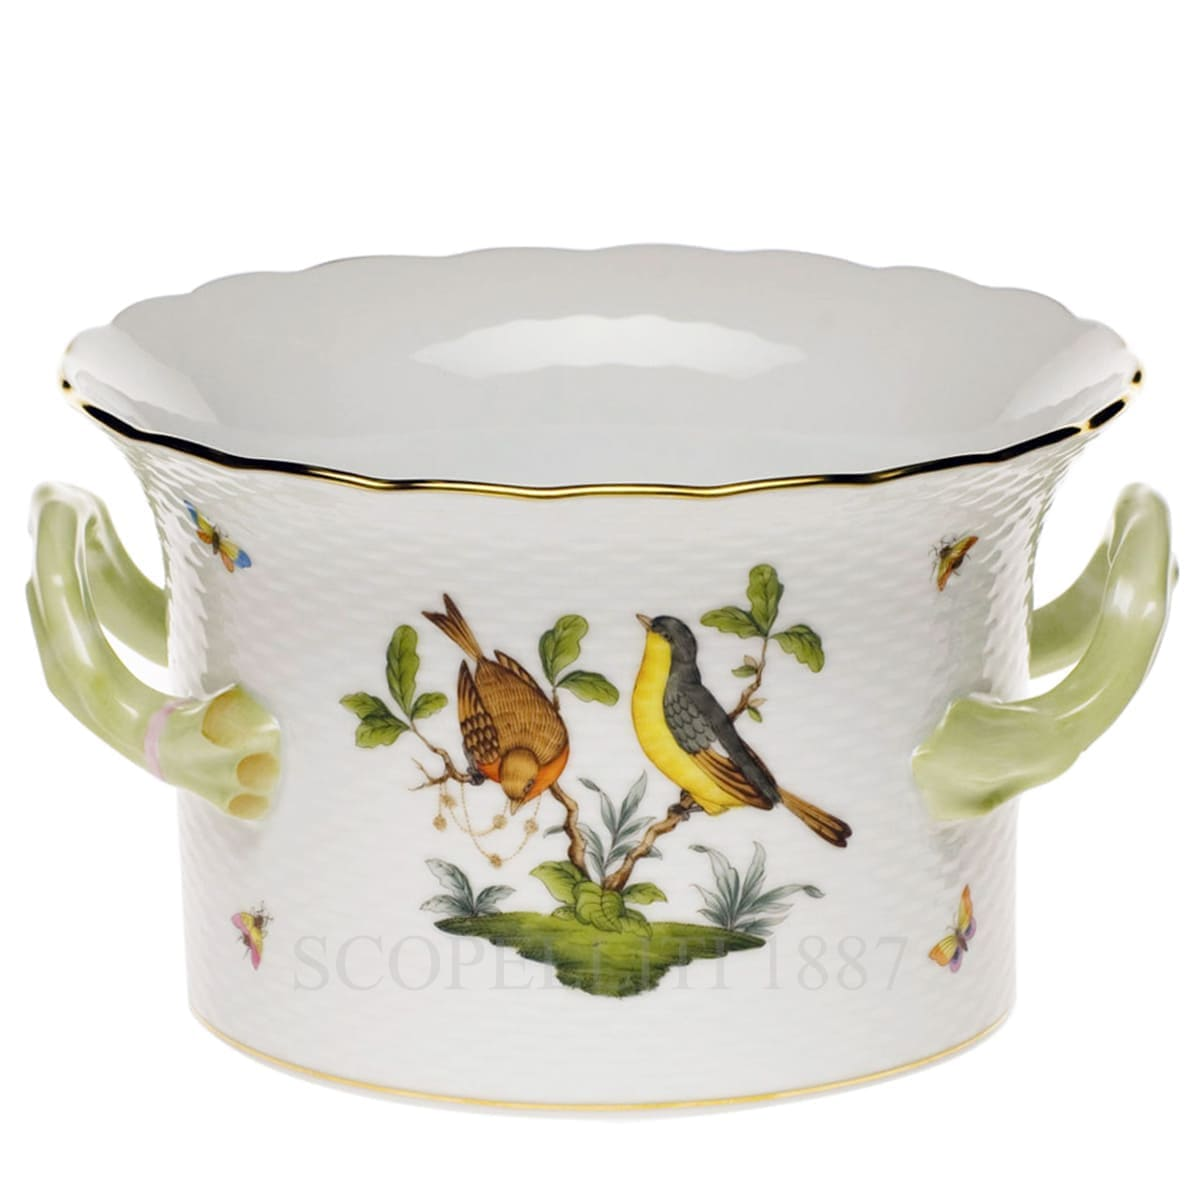 herend porcelain rothschild cachepot with handles